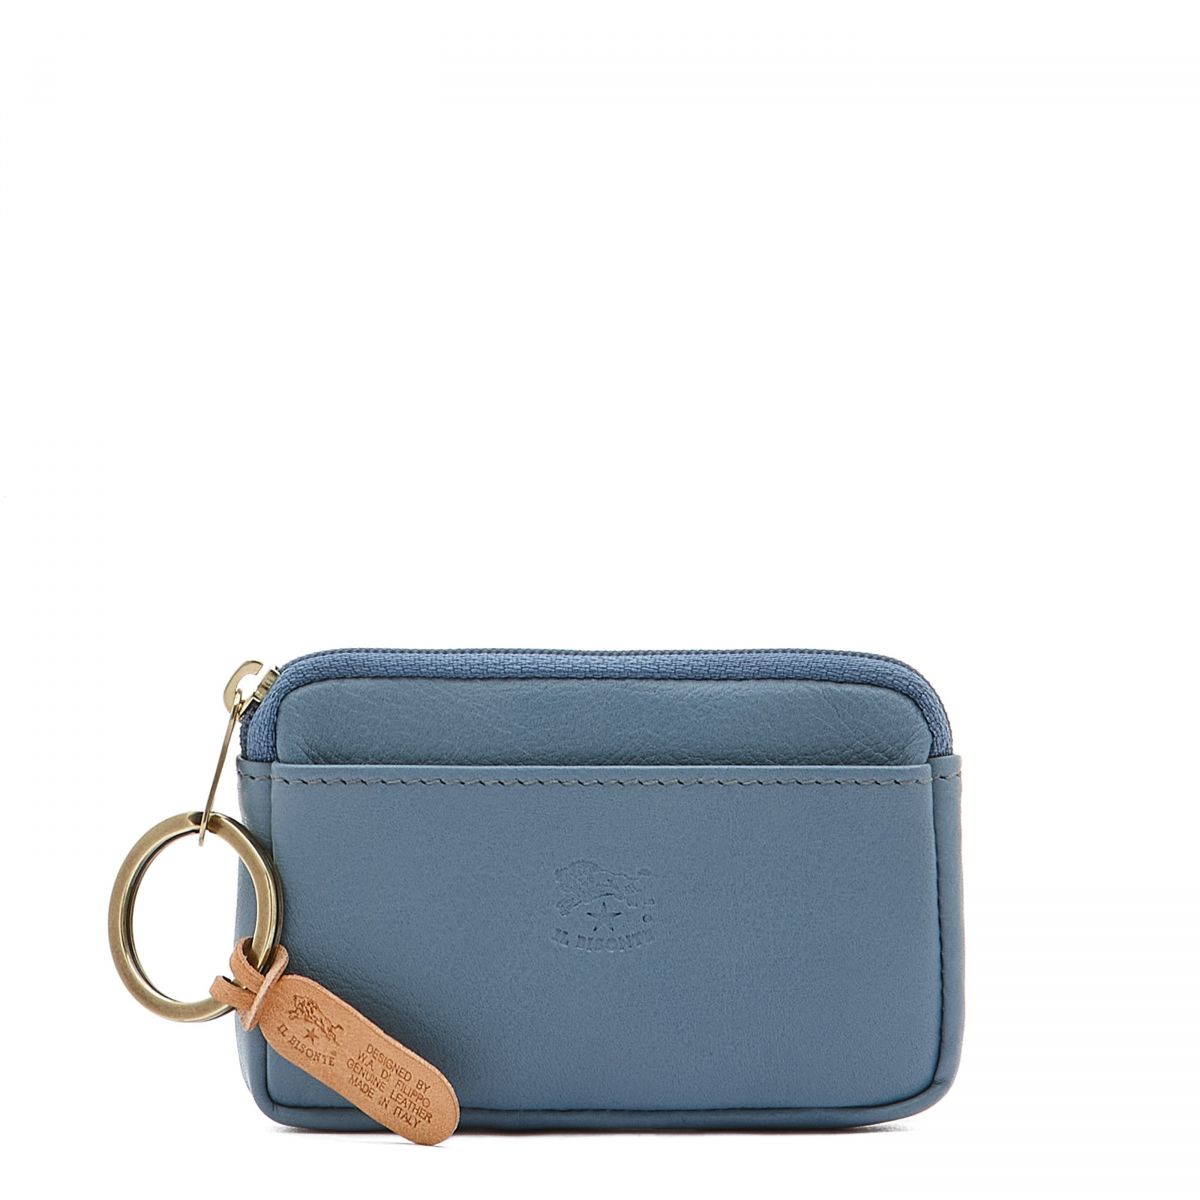 Coin Purse in Cowhide Leather color Blue Teal - SCP017   Details